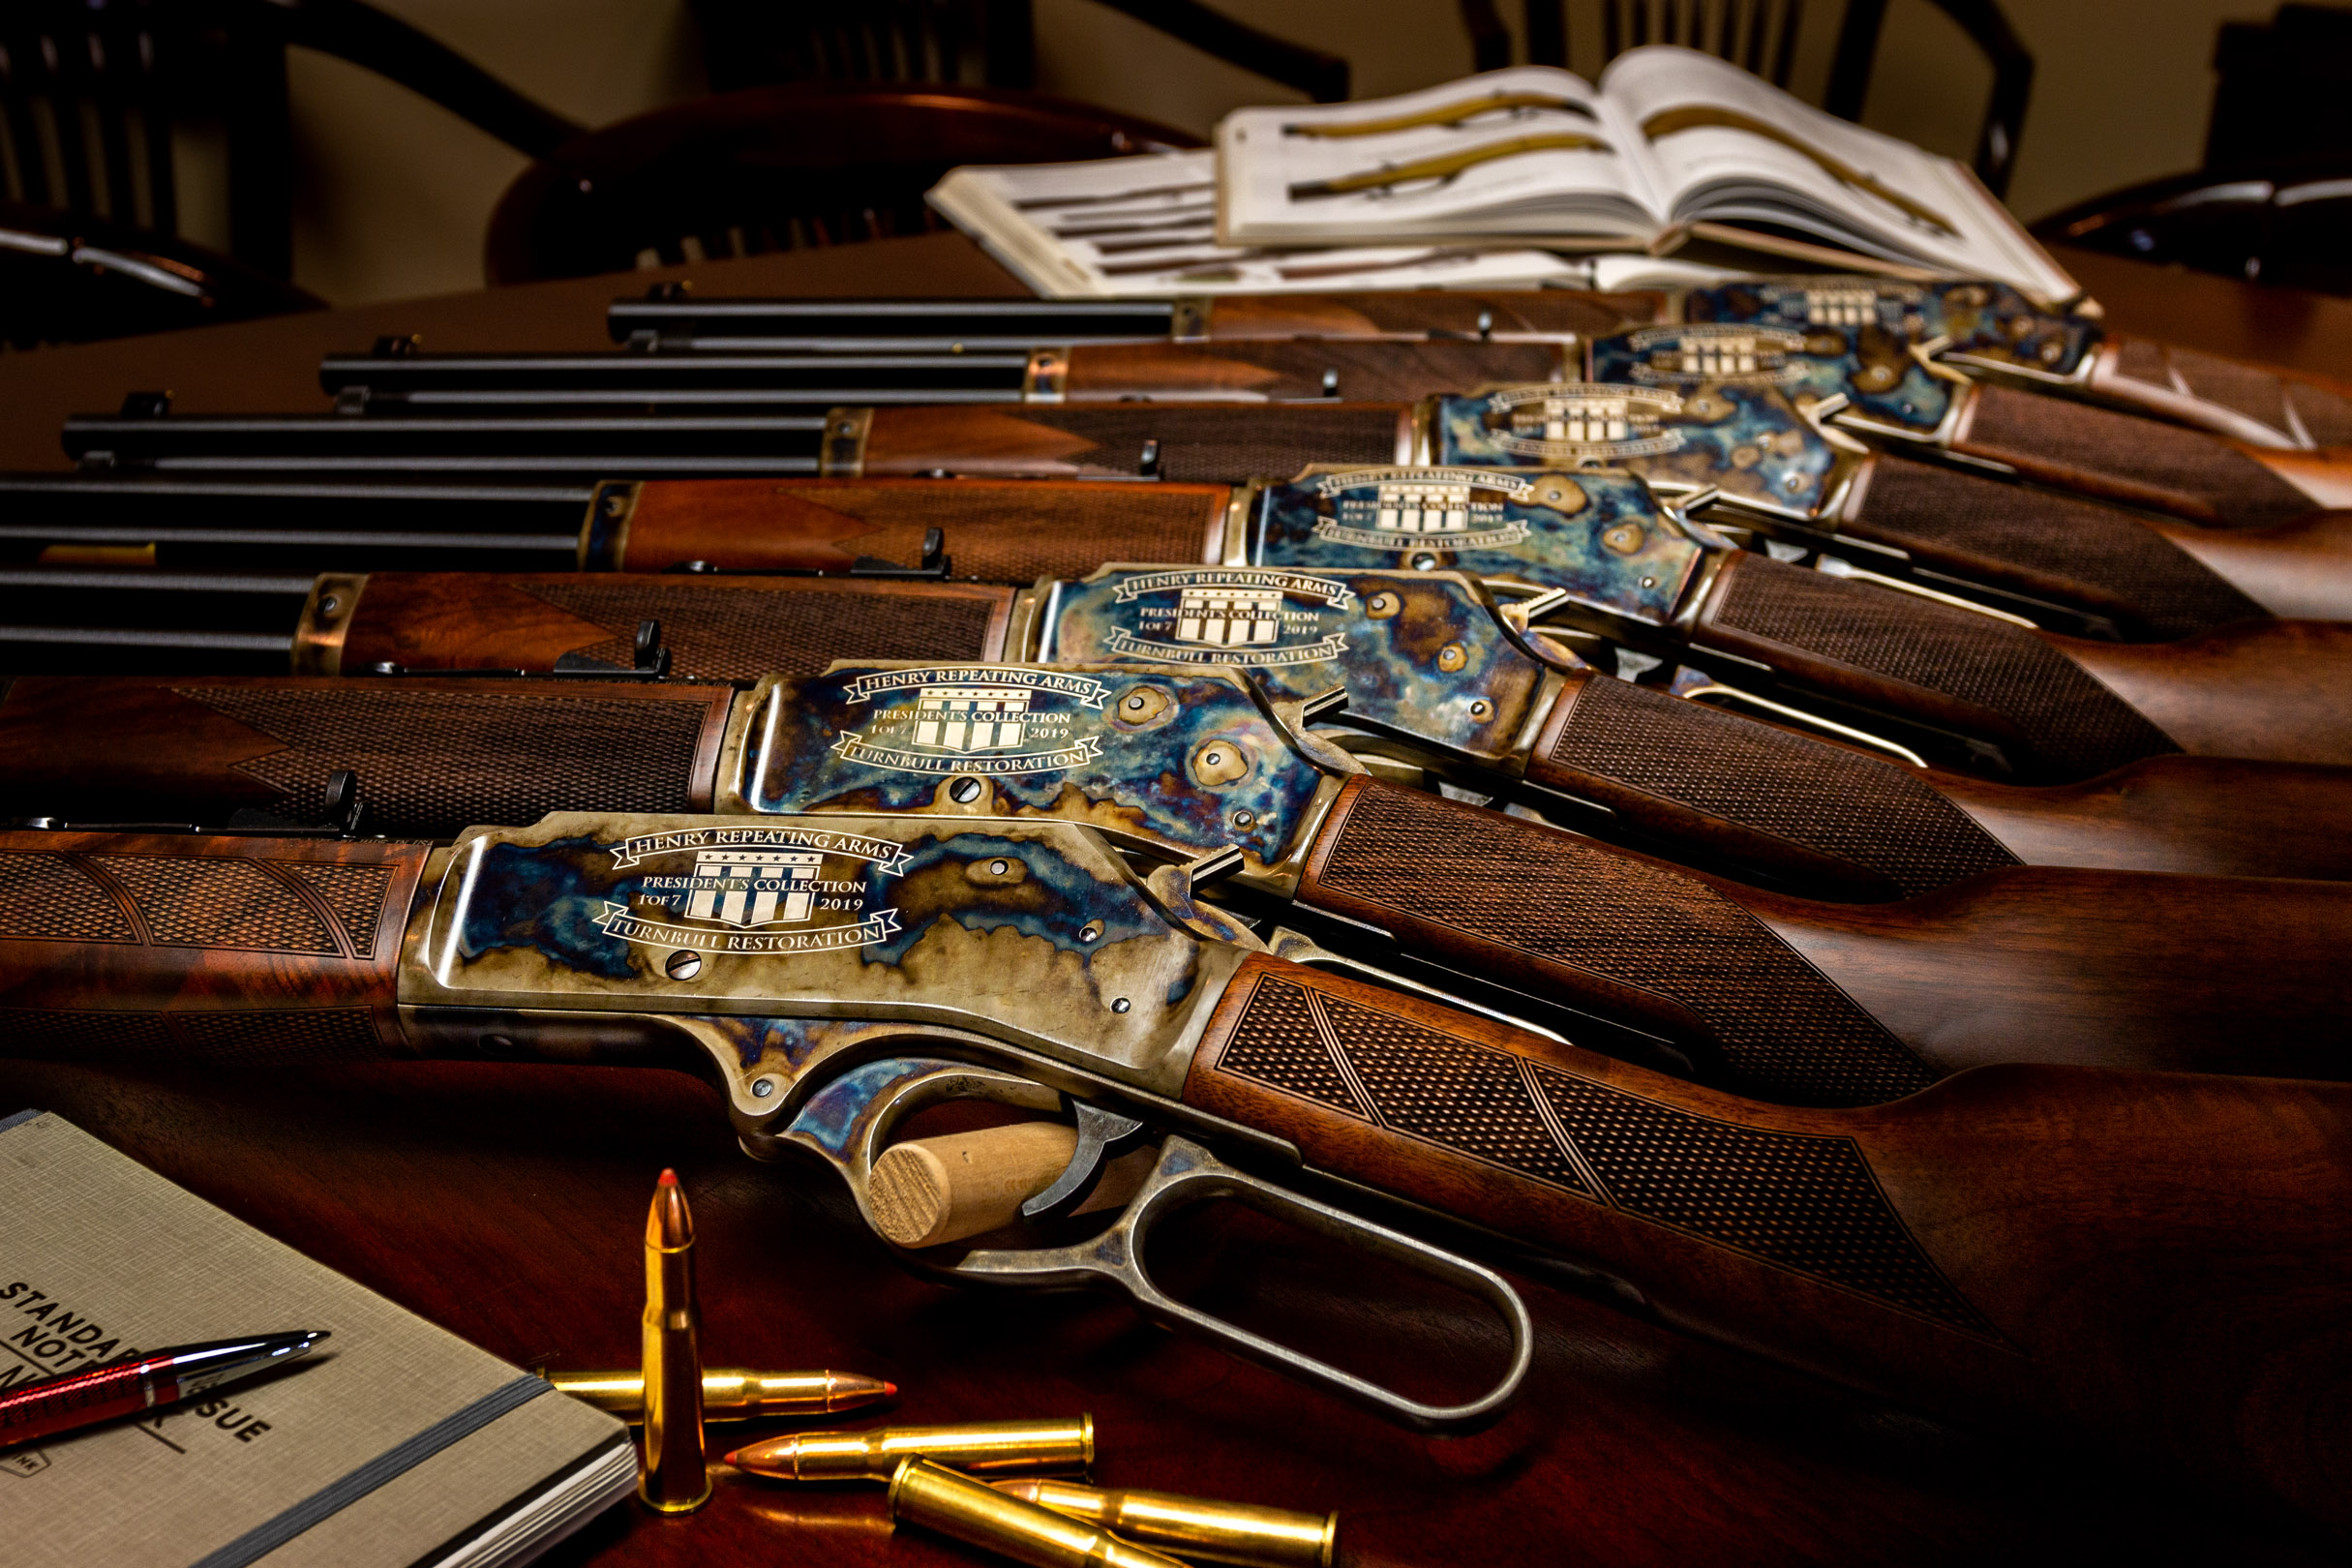 Photograph of the Henry Repeating Arms - Turnbull Restoration President's Collection, featuring Turnbull's bone charcoal color case hardening